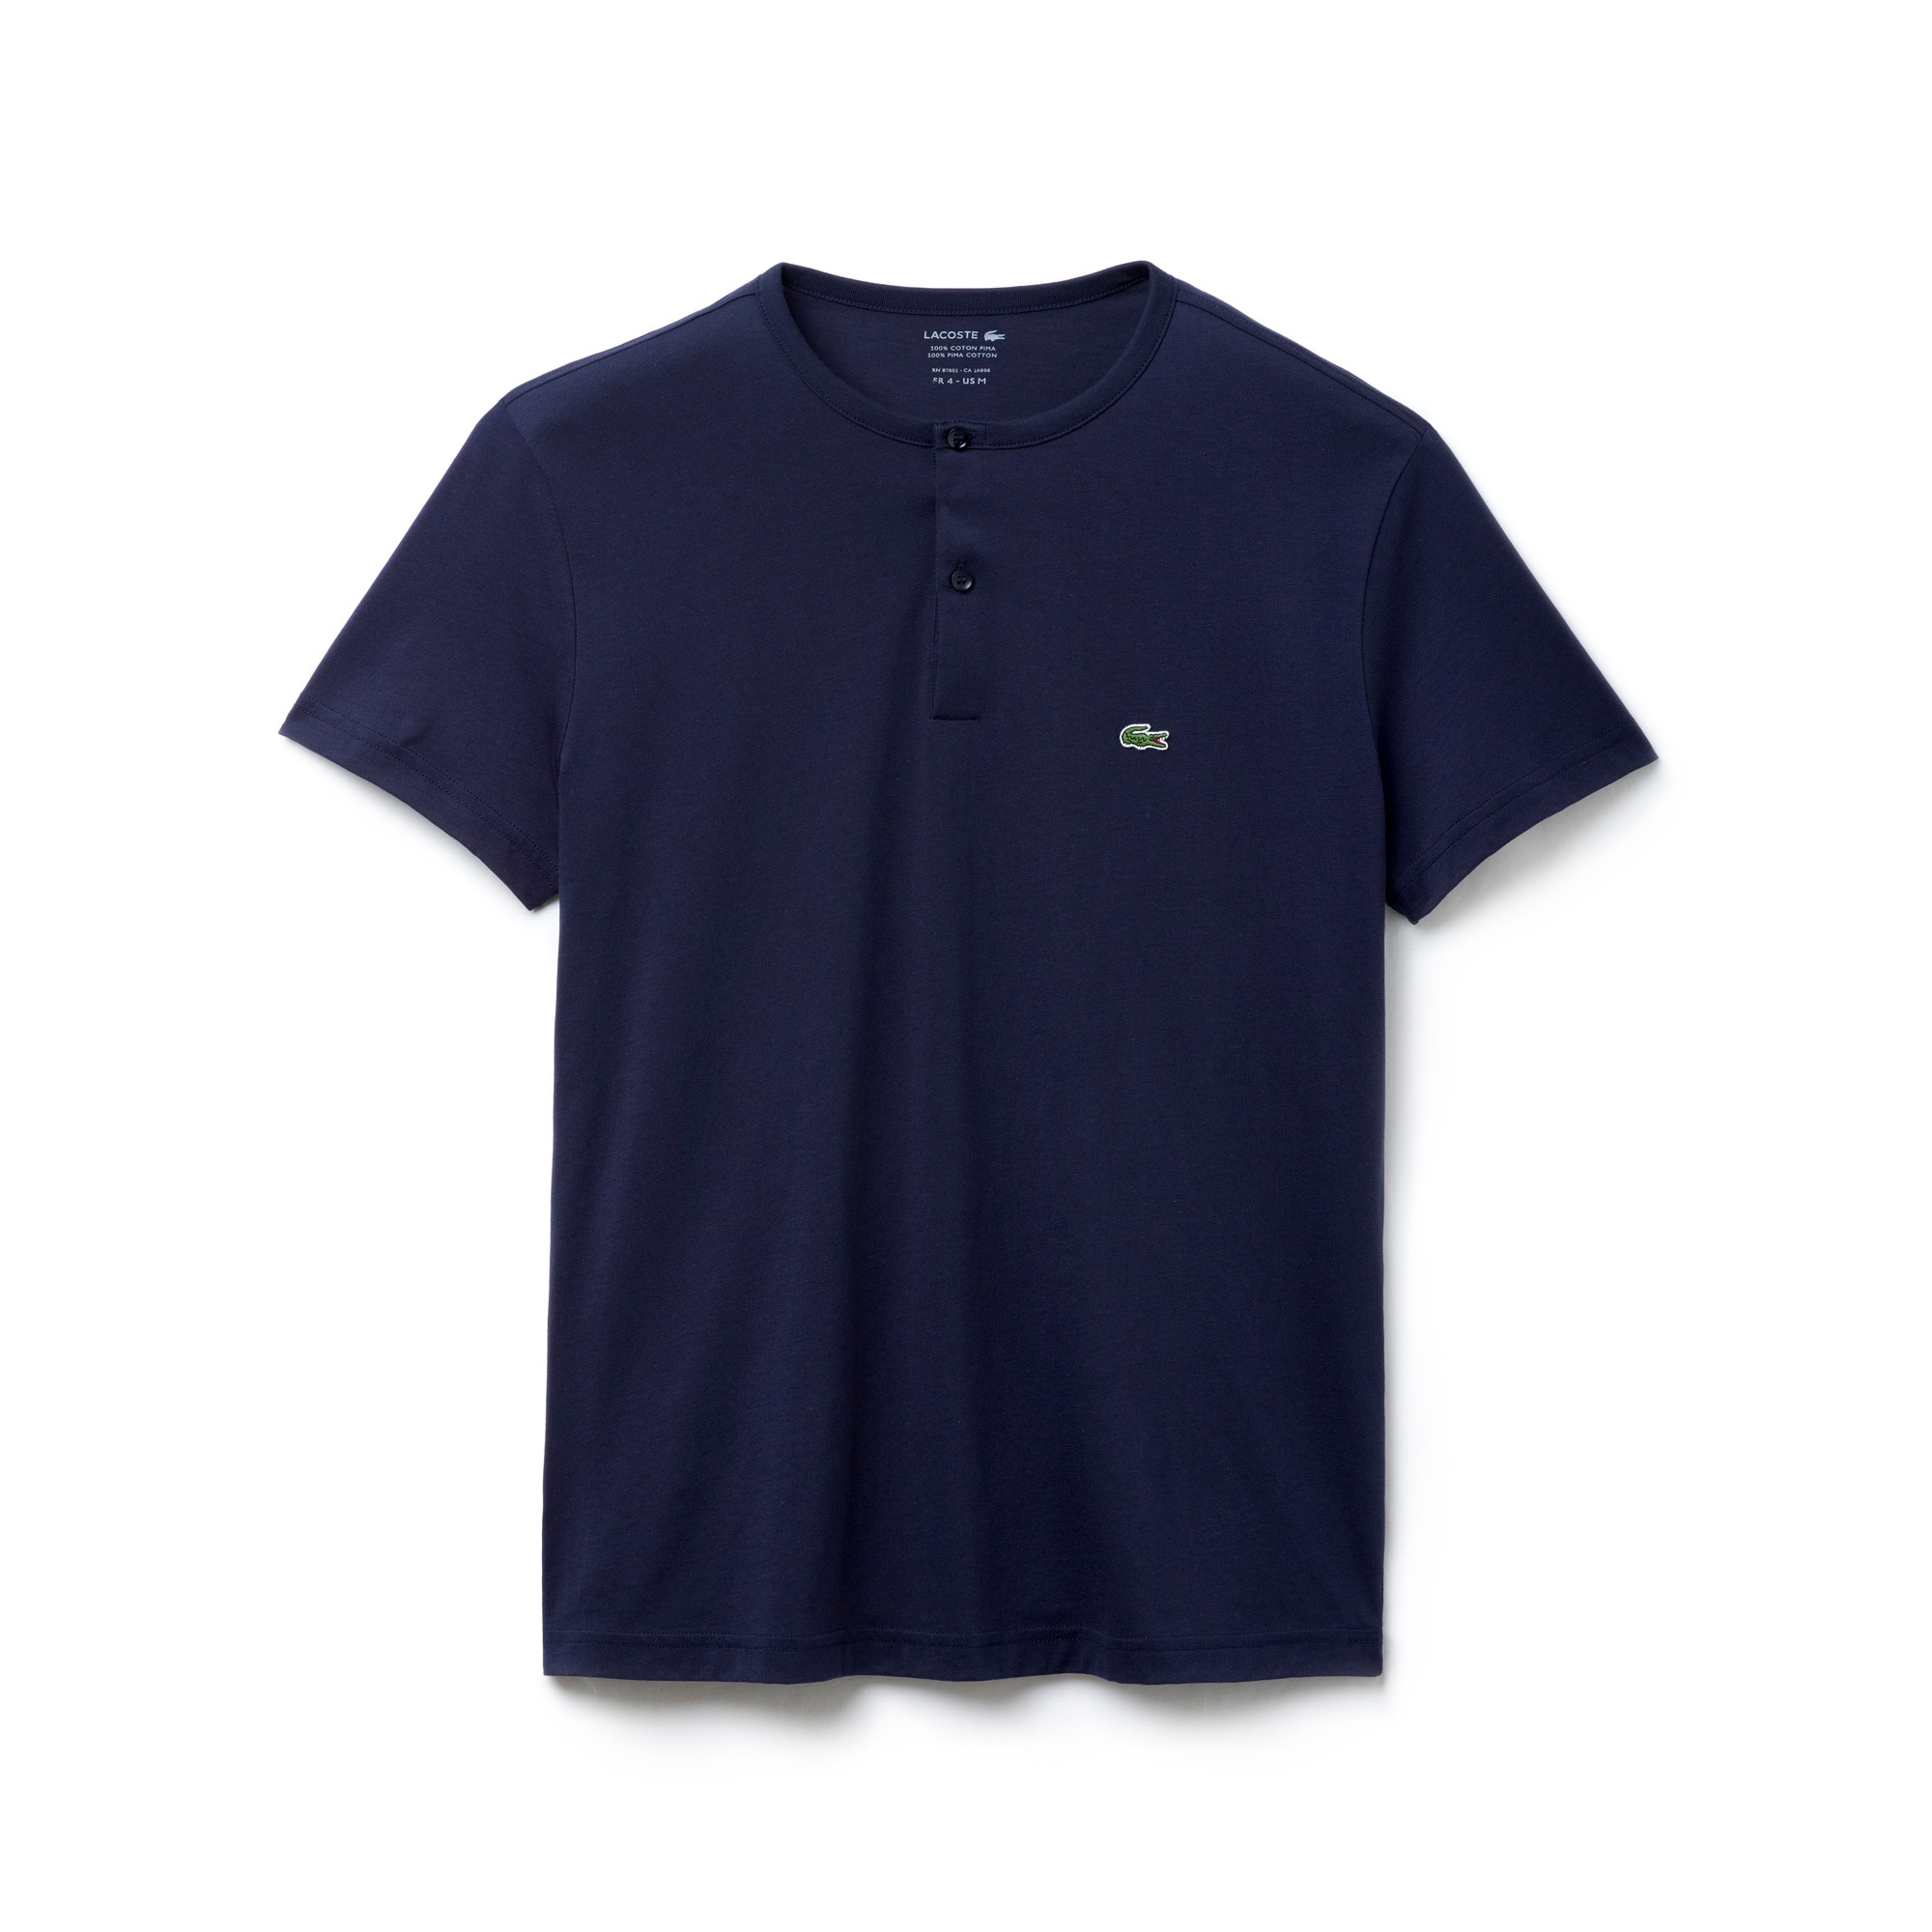 Buttoned Crew Neck T-Shirt in Solid Pima Cotton